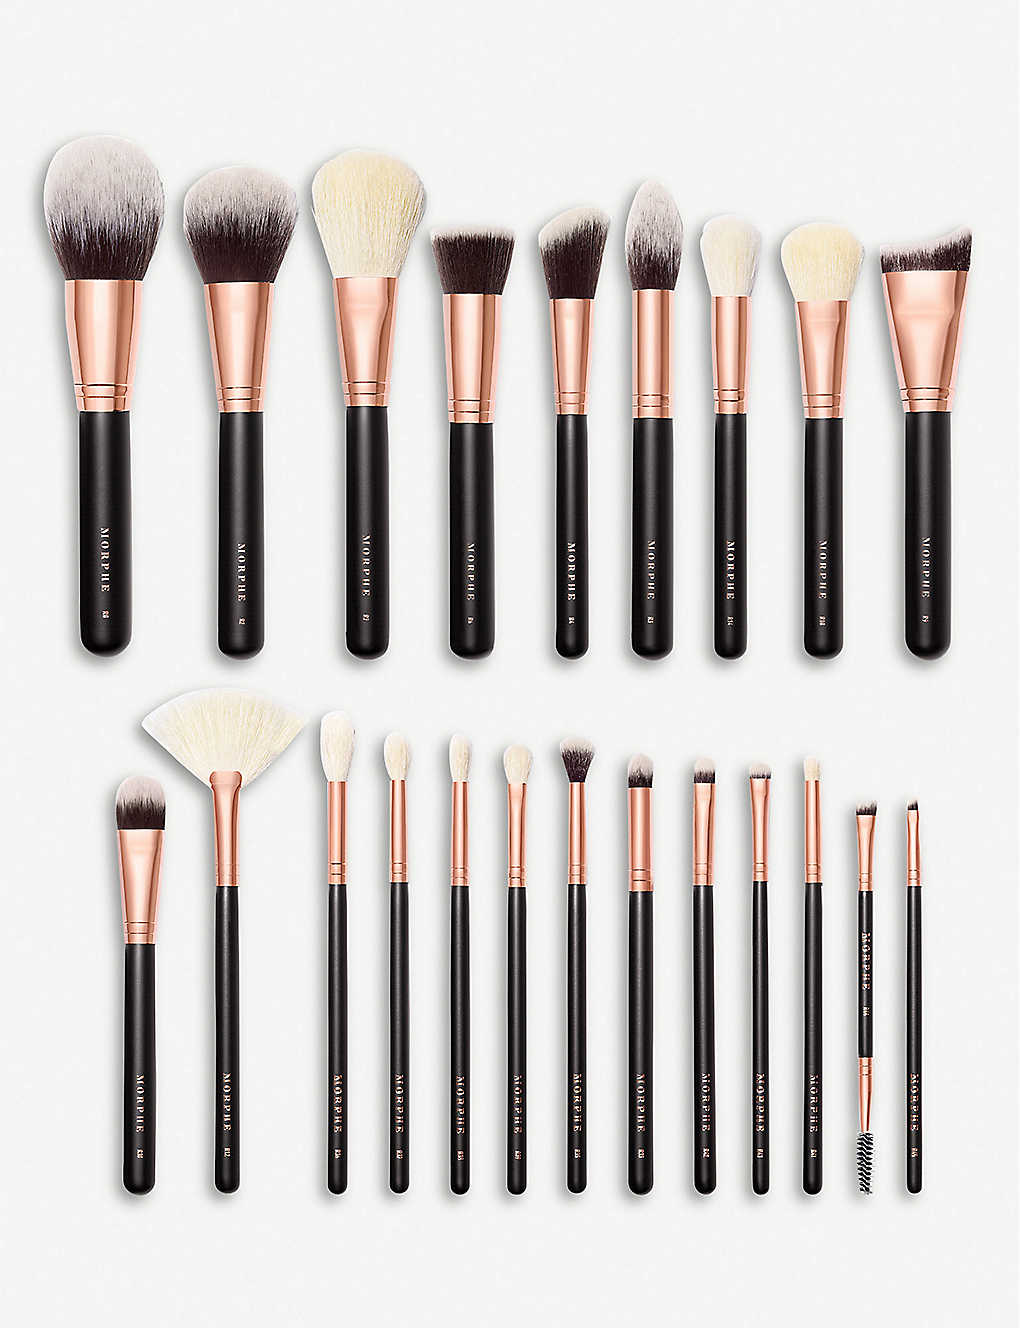 Morphe Stroke Of Luxe Brush Collection Selfridges Com Gift all year round with morphe's selection of affordable yet desirable gifts. morphe